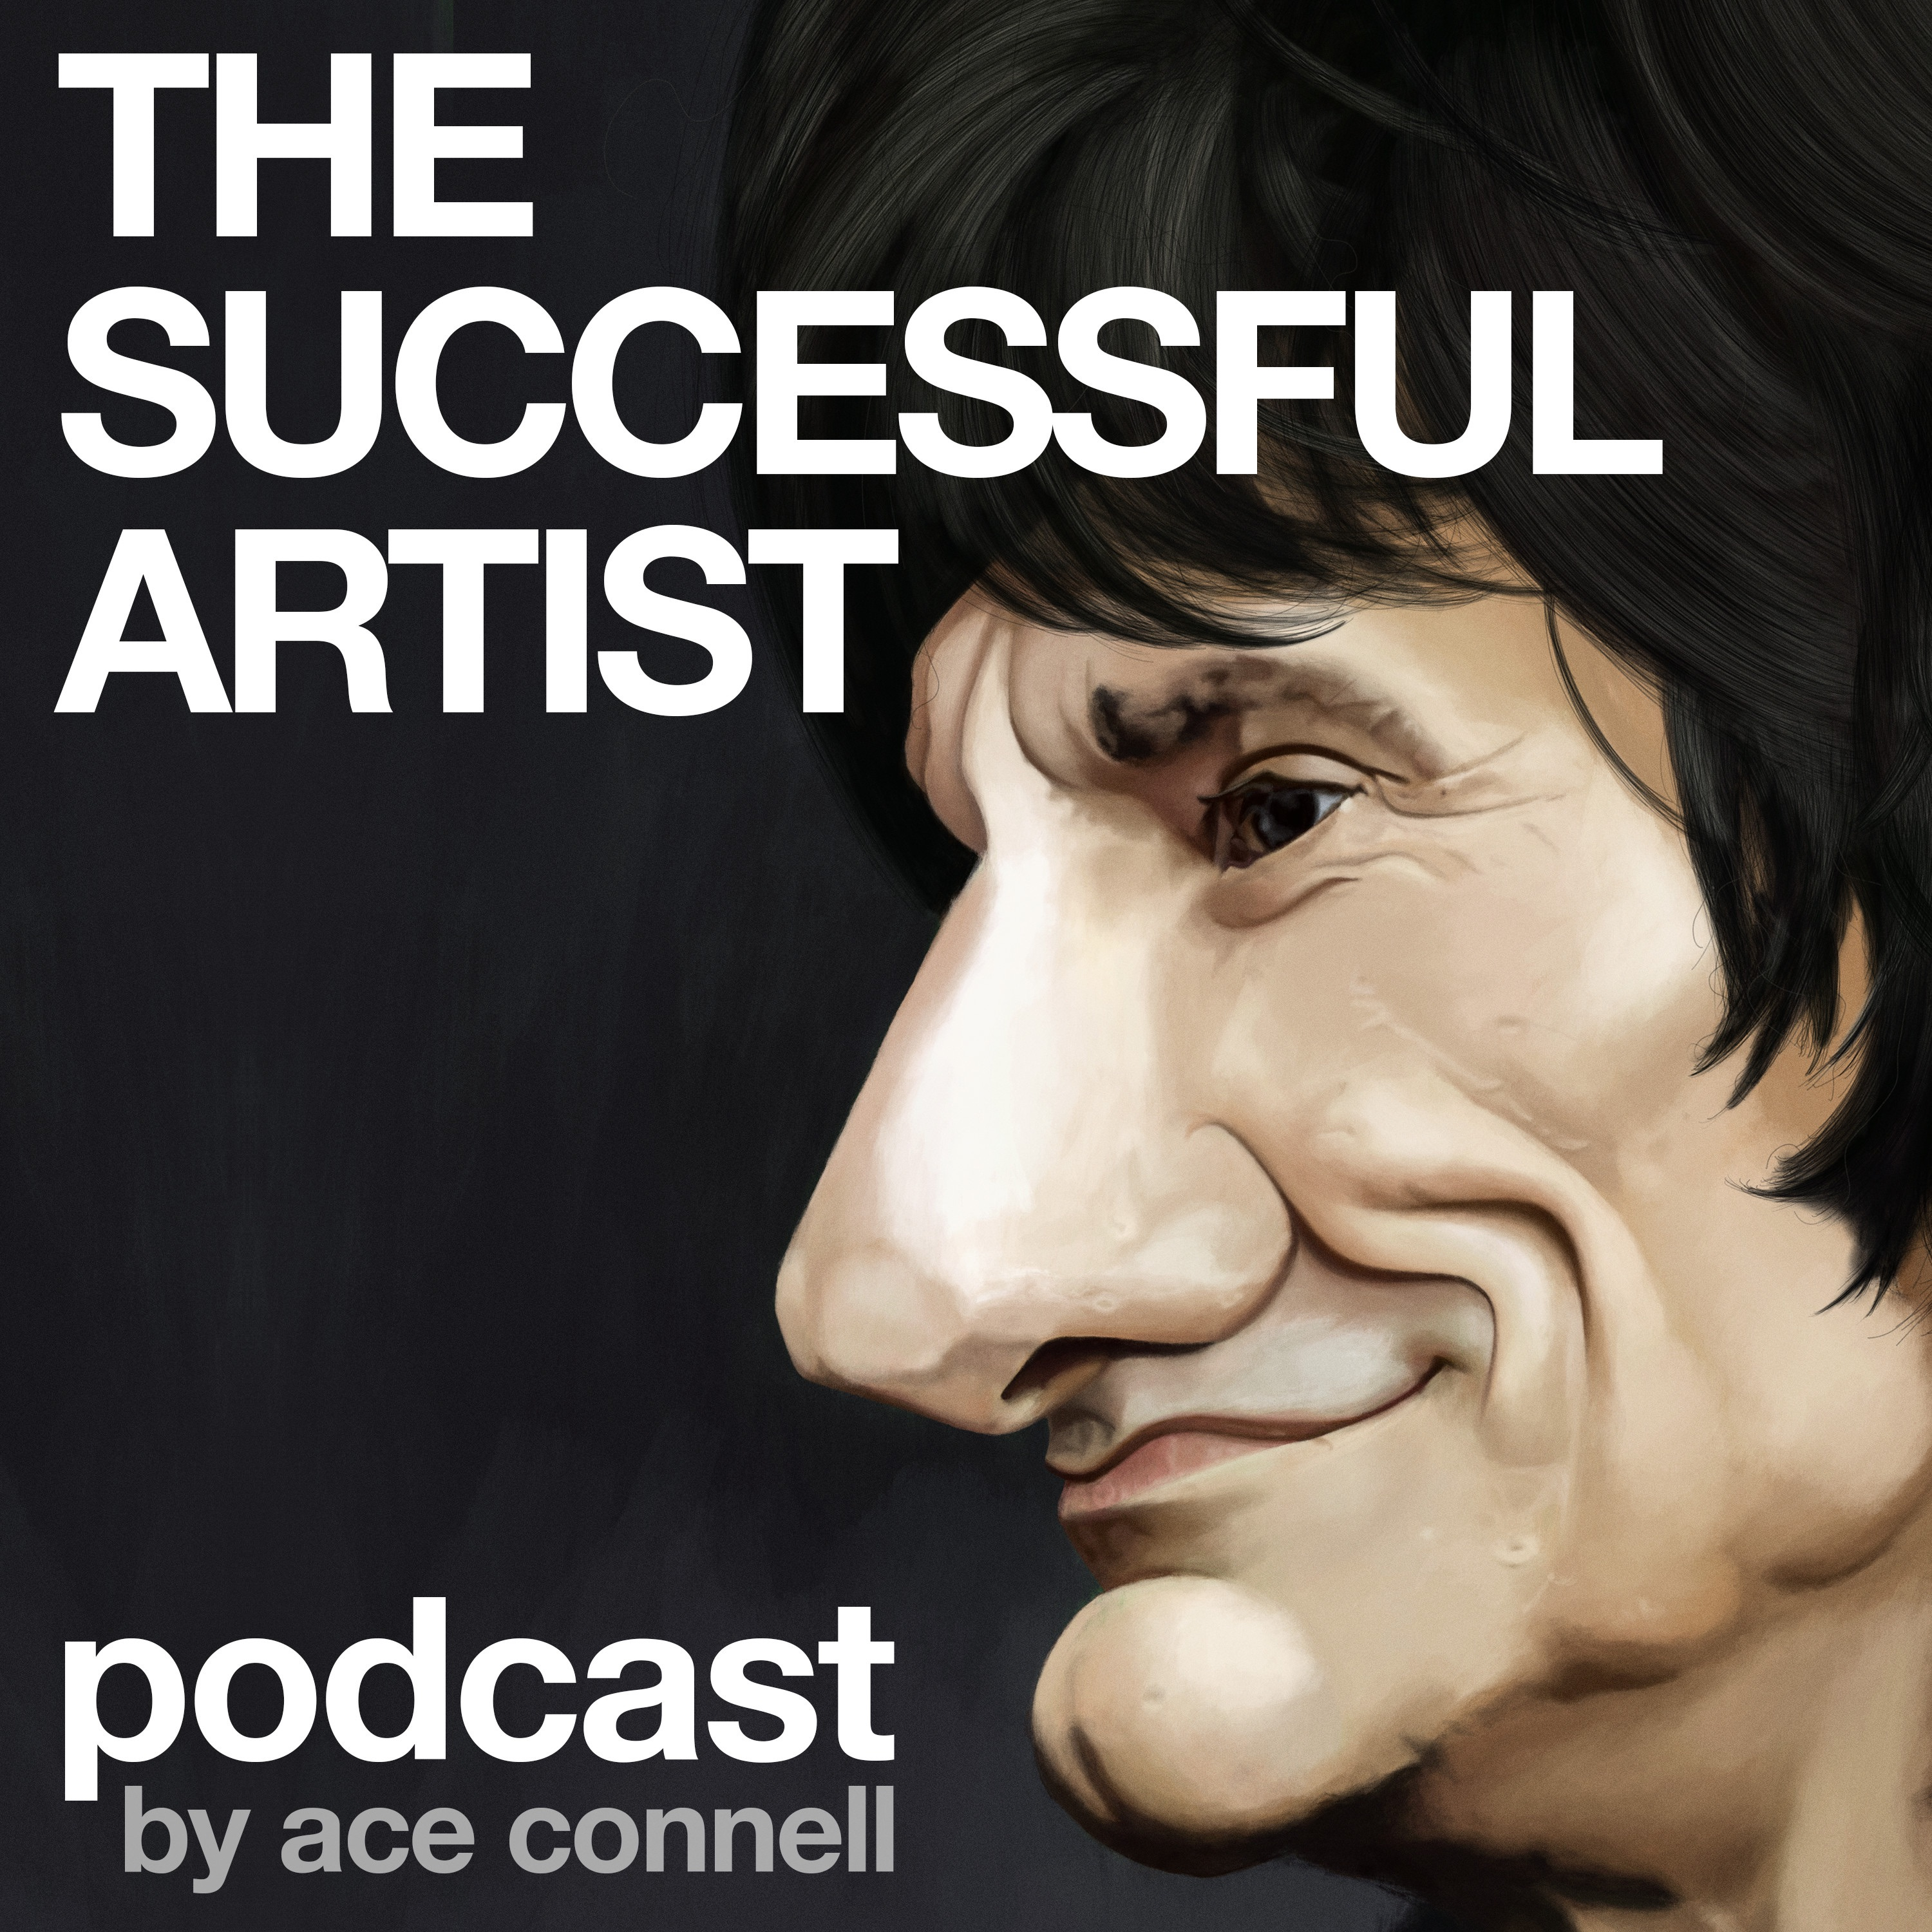 The Successful Artist Podcast by Ace Connell